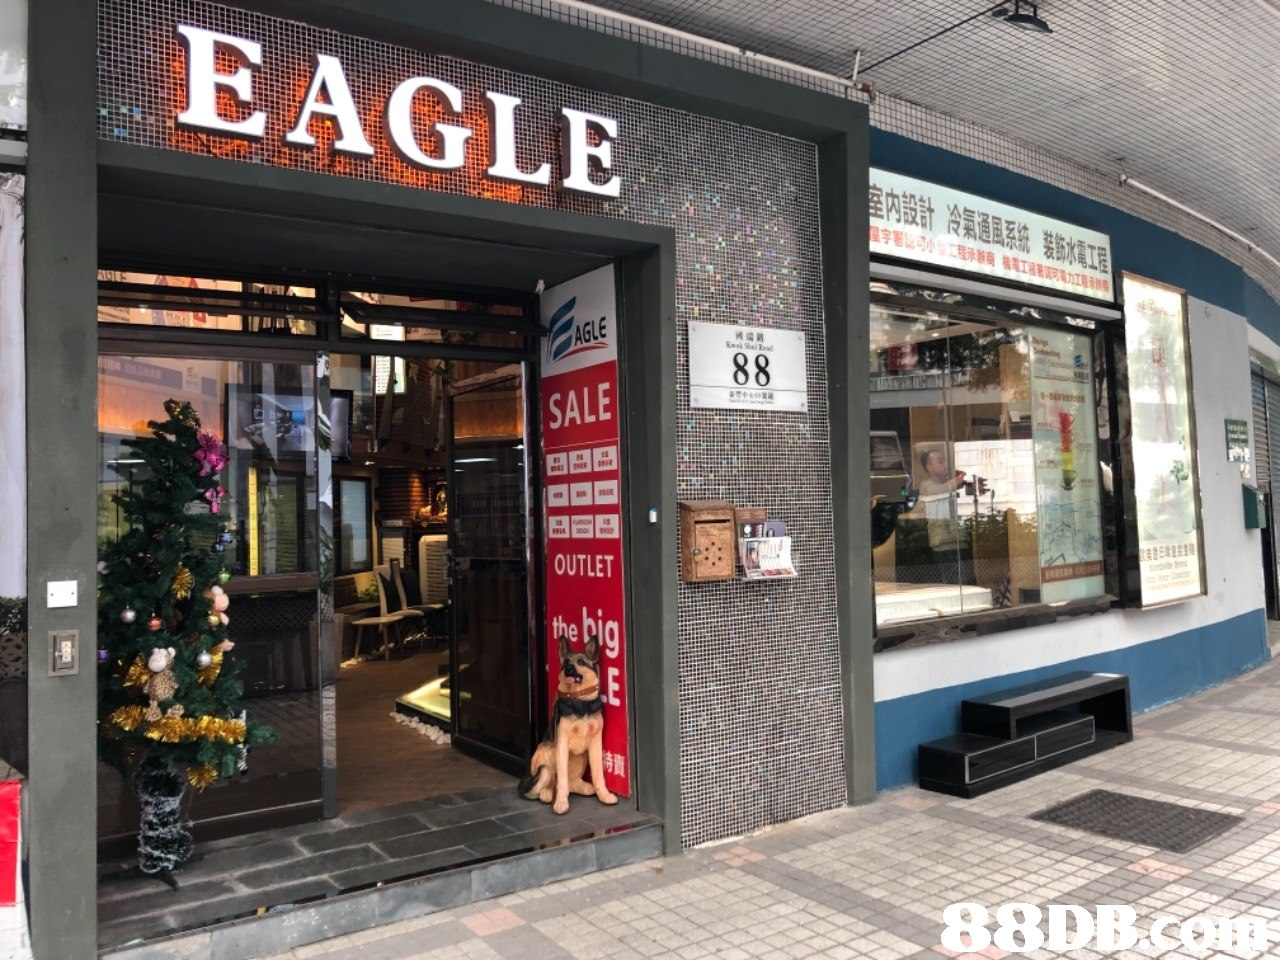 EAGLE SALE OUTLET the b  Building,Outlet store,Retail,Facade,